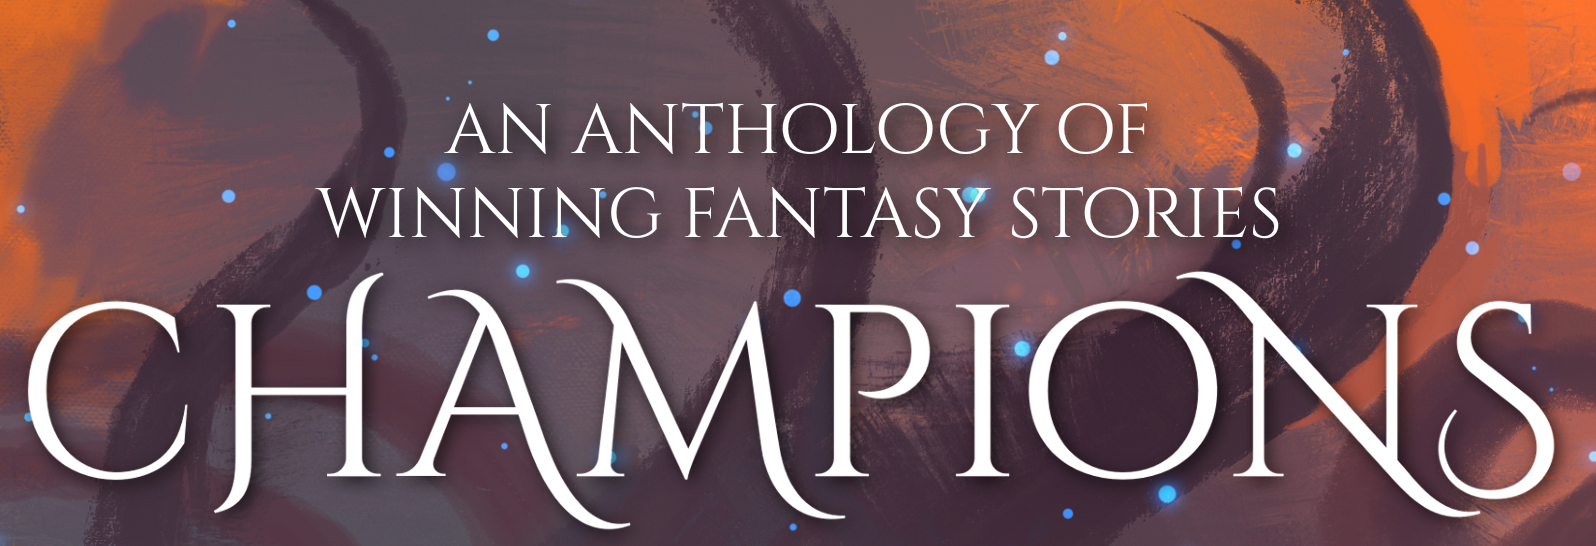 Champions is finally out!